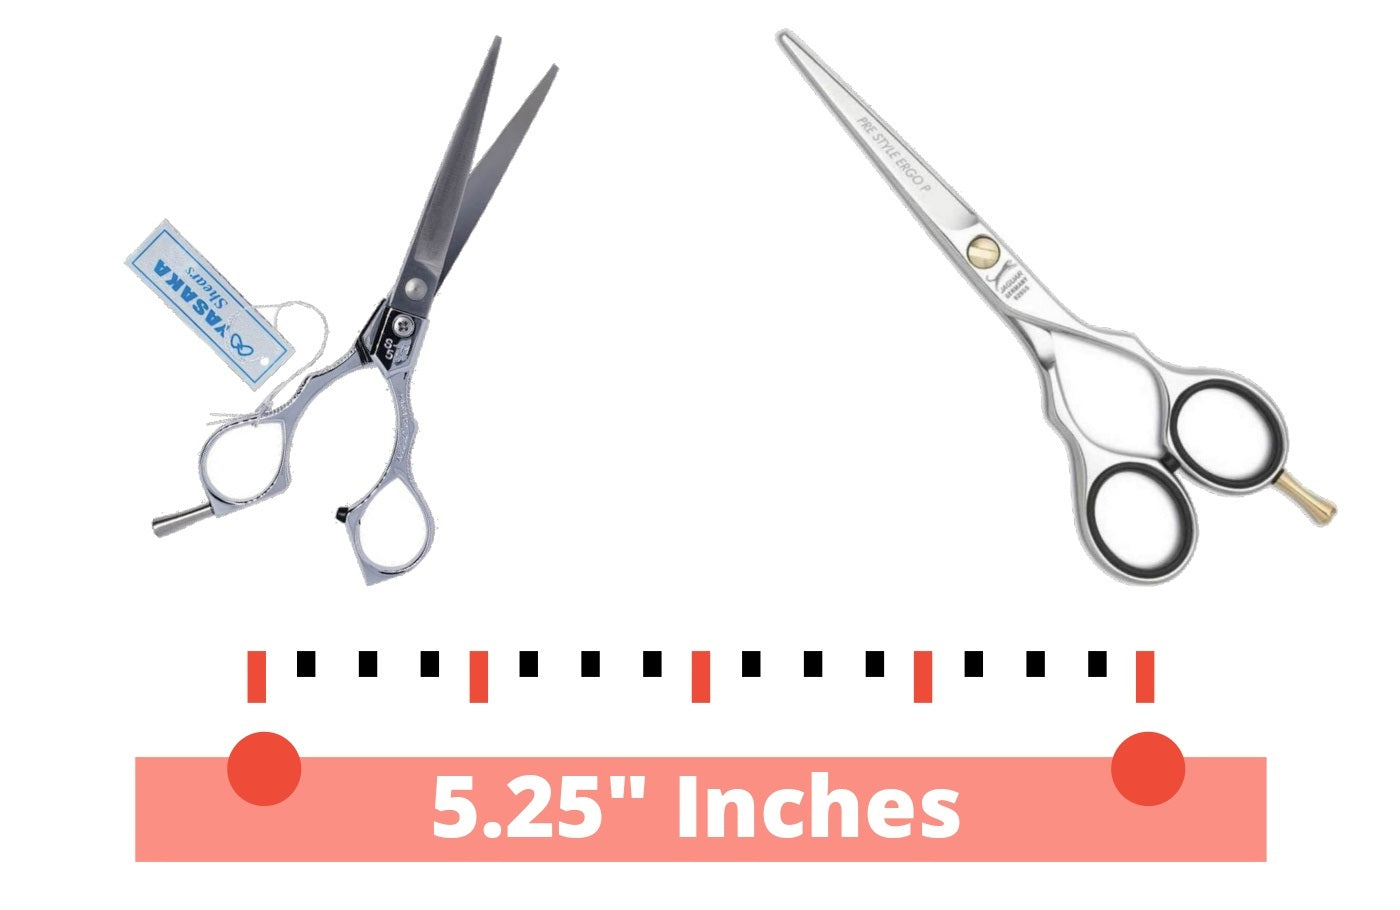 Our 5.25 Inch Hairdressing Scissors